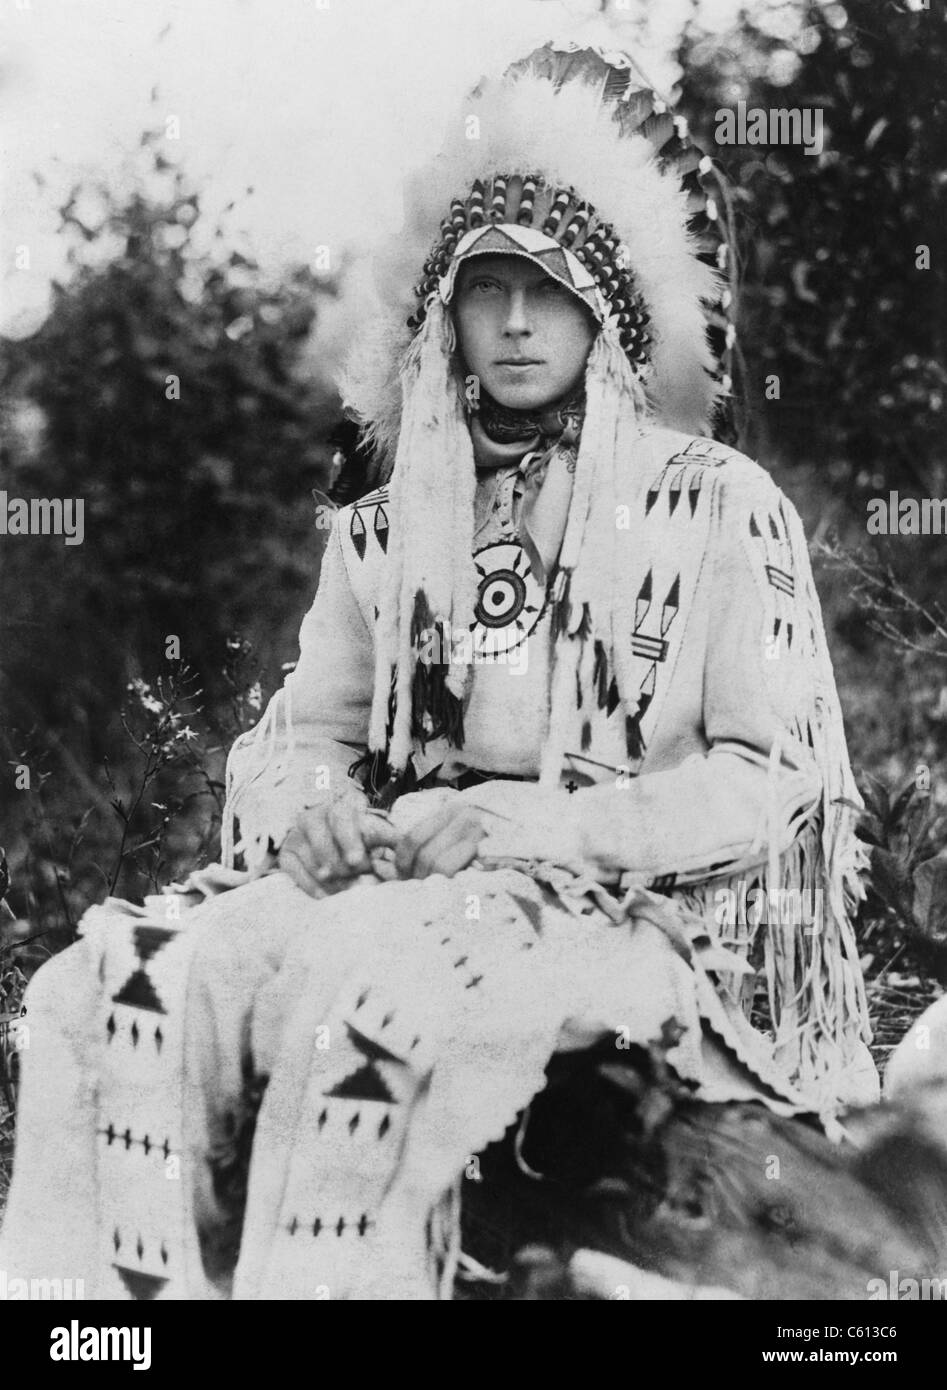 Britain's King Edward VIII as Prince of Wales, wearing the headdress of a Native American chief during a visit - Stock Image